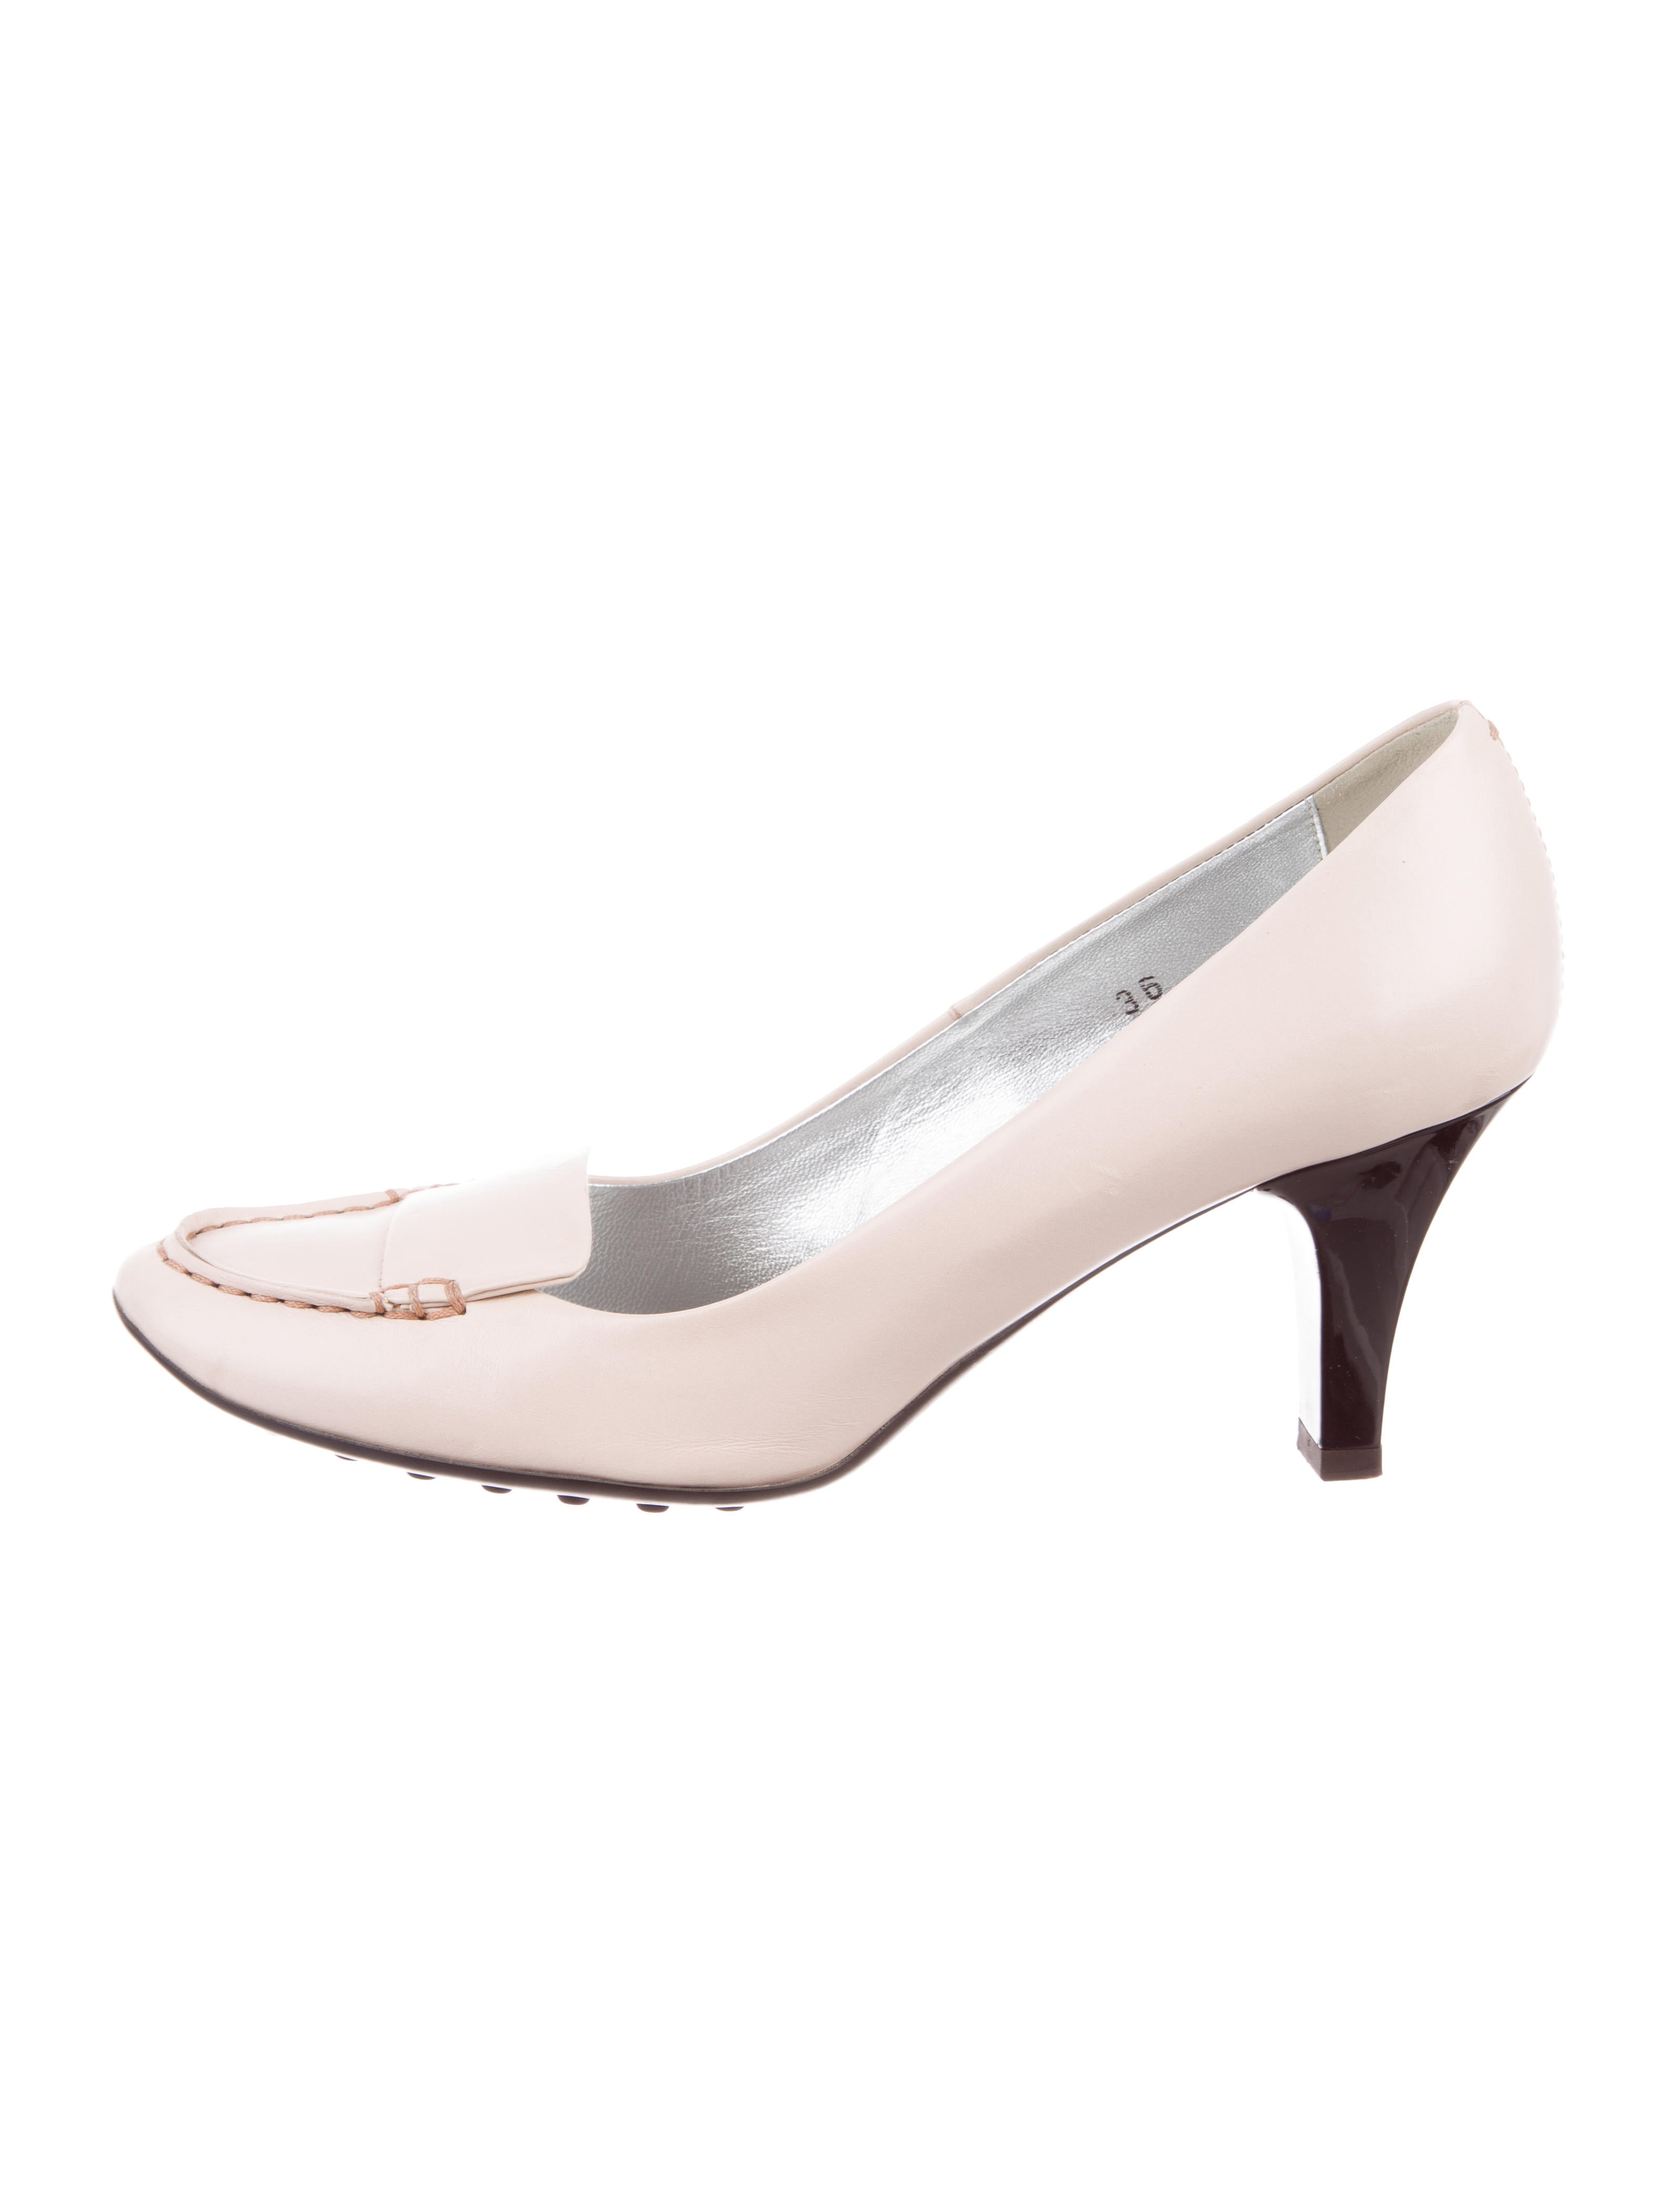 Tod's Round-Toe Loafer Pumps sale discounts free shipping prices B3FTXI